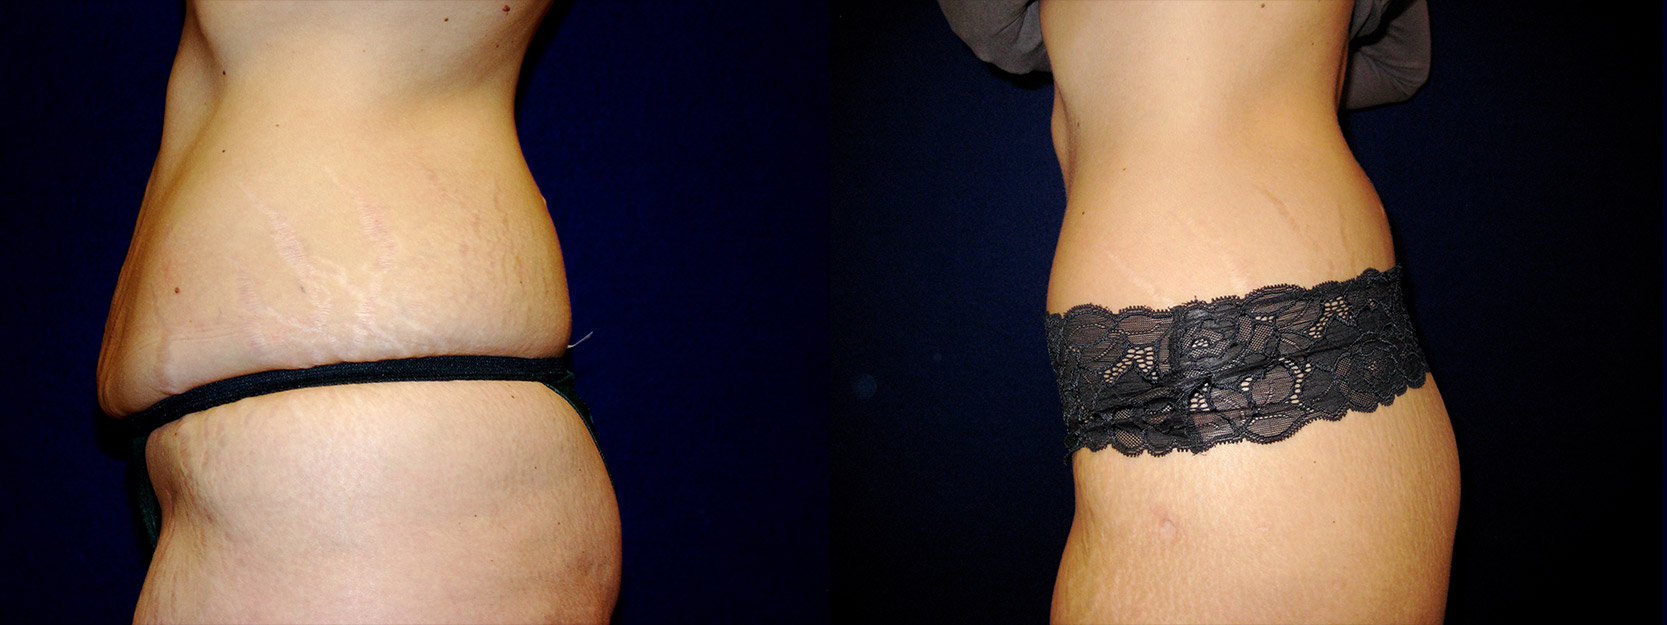 Left Profile View - Circumferential Abdominoplasty After Massive Weight Loss